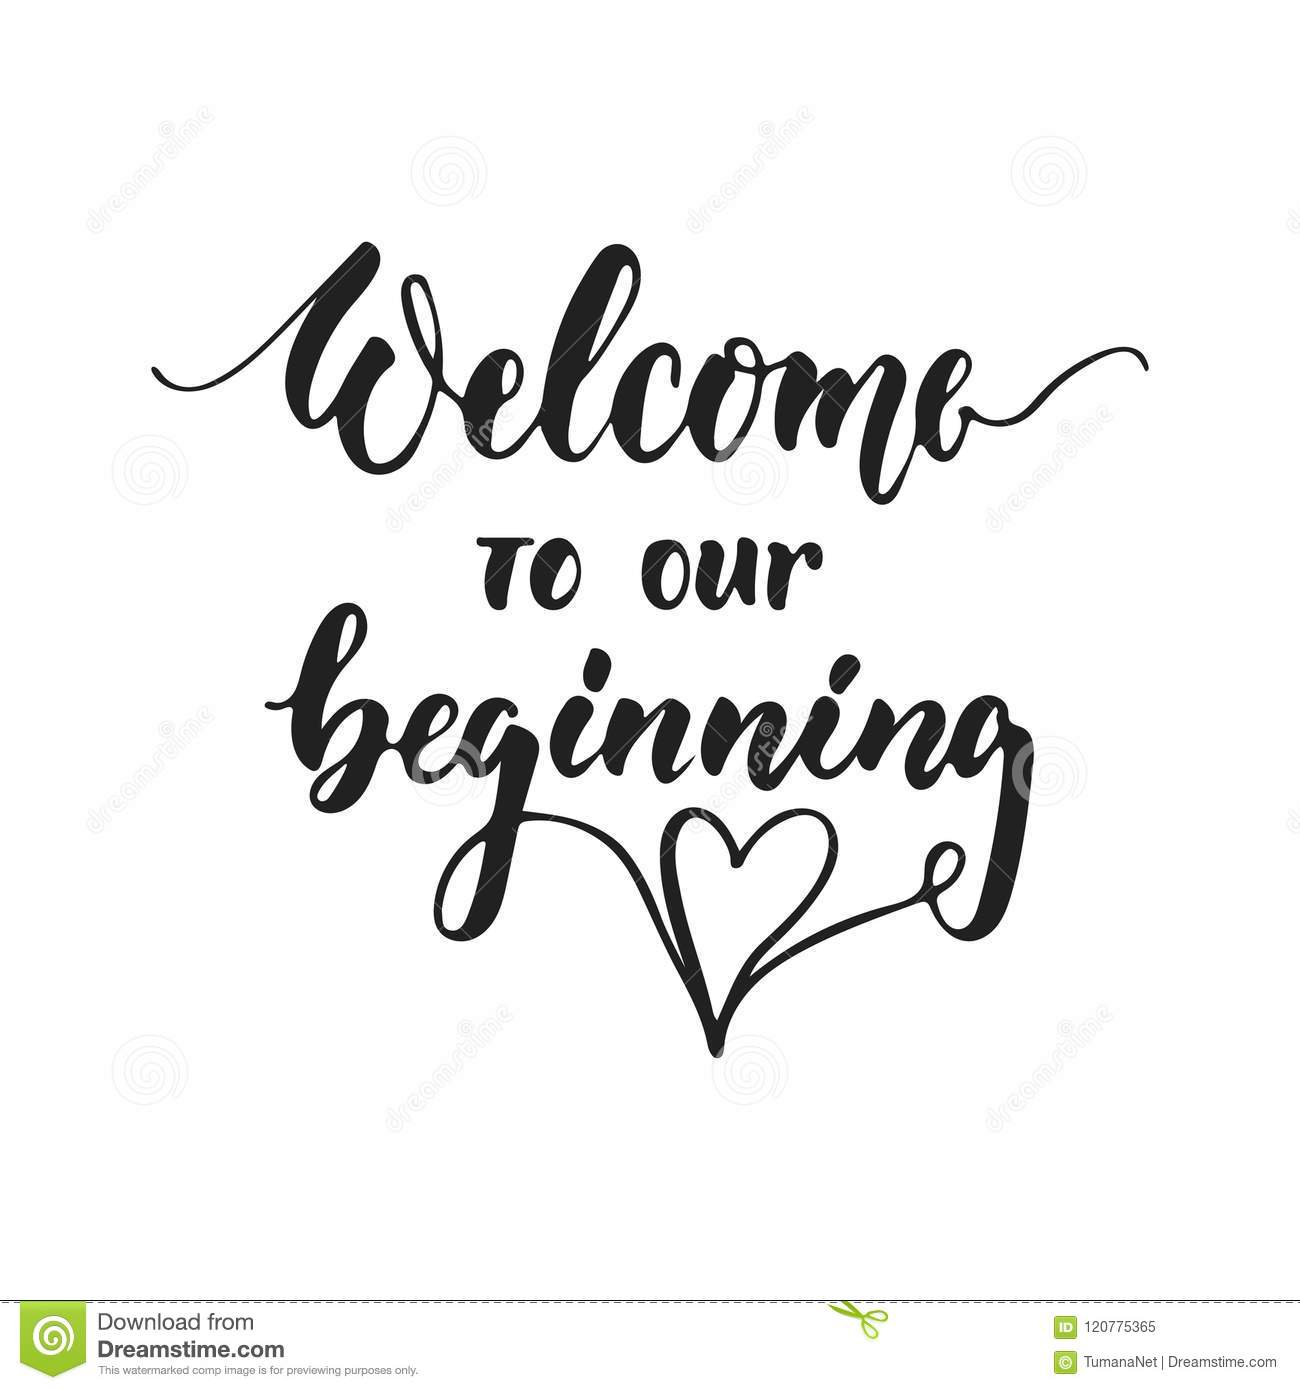 Welcome to our beginning - hand drawn wedding romantic lettering phrase isolated on the white background. Fun brush ink